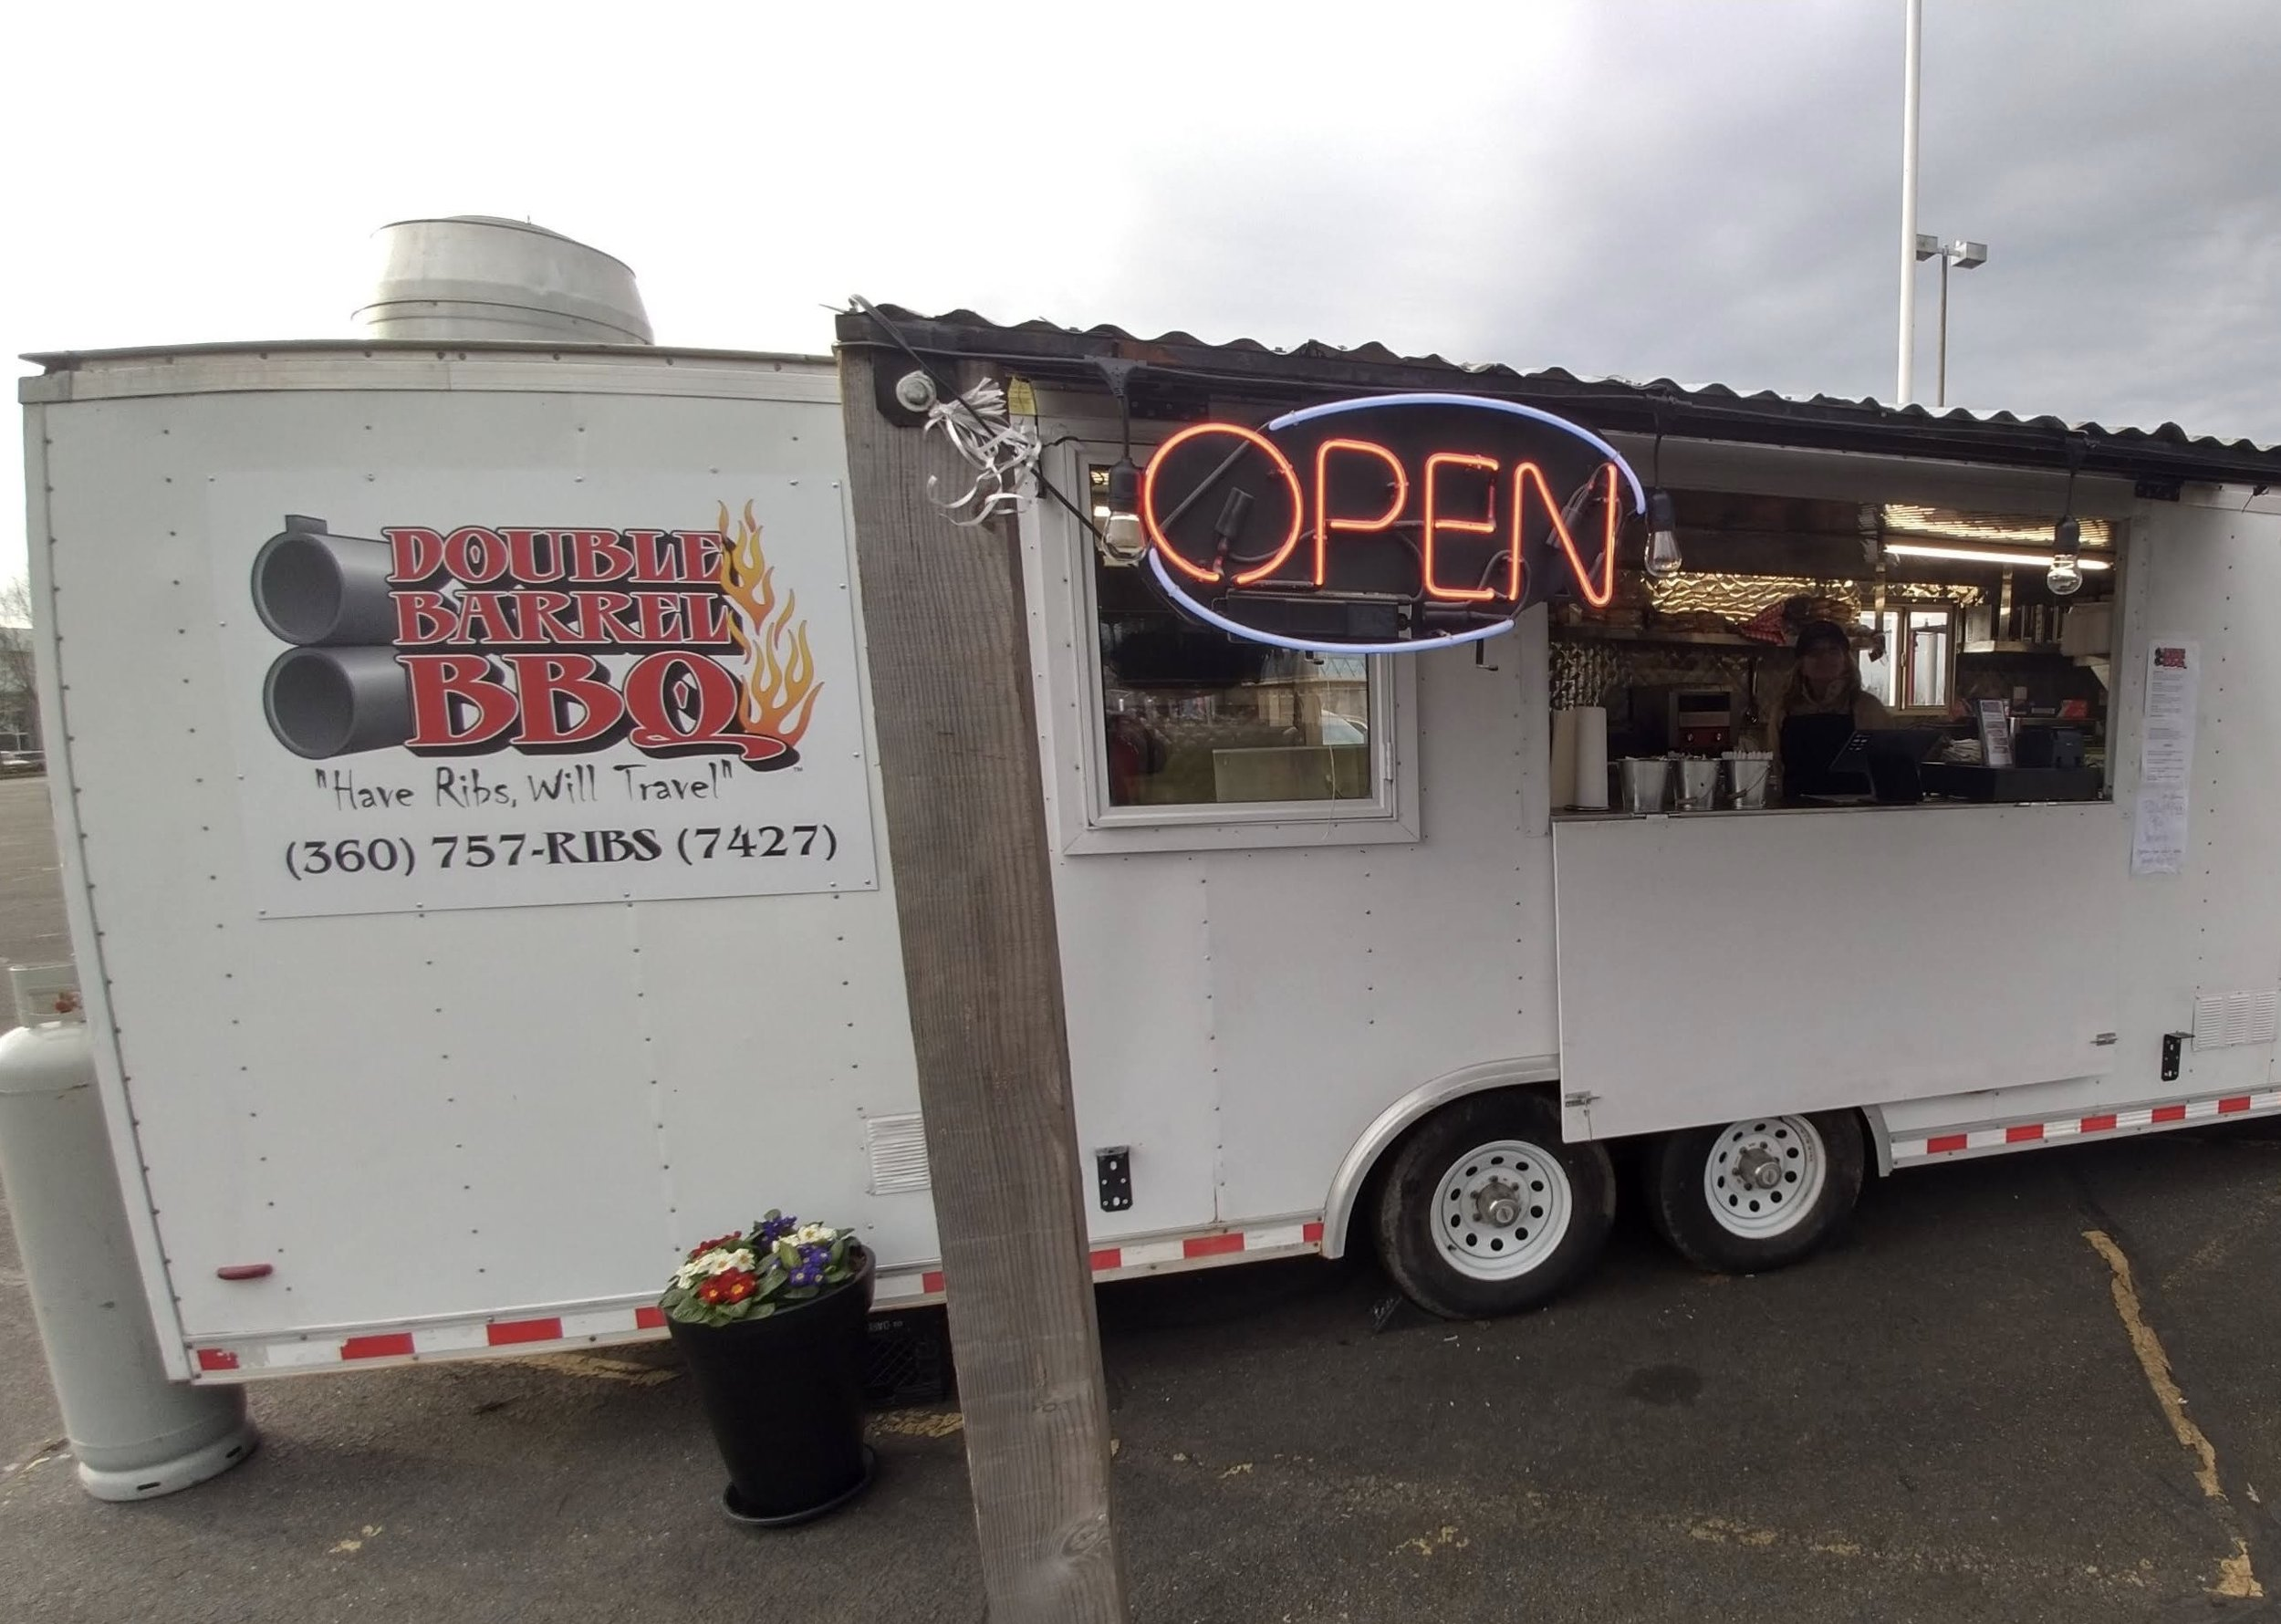 Double Barrell BBQ - BBQFind on FacebookWebsite: www.doublebarrel.comPhone: 206 -771-1512Email: nancy@doublebarrelbbq.comAvailable for cateringAlso serves in Mount Vernon, Sedro Woolley & Burlington